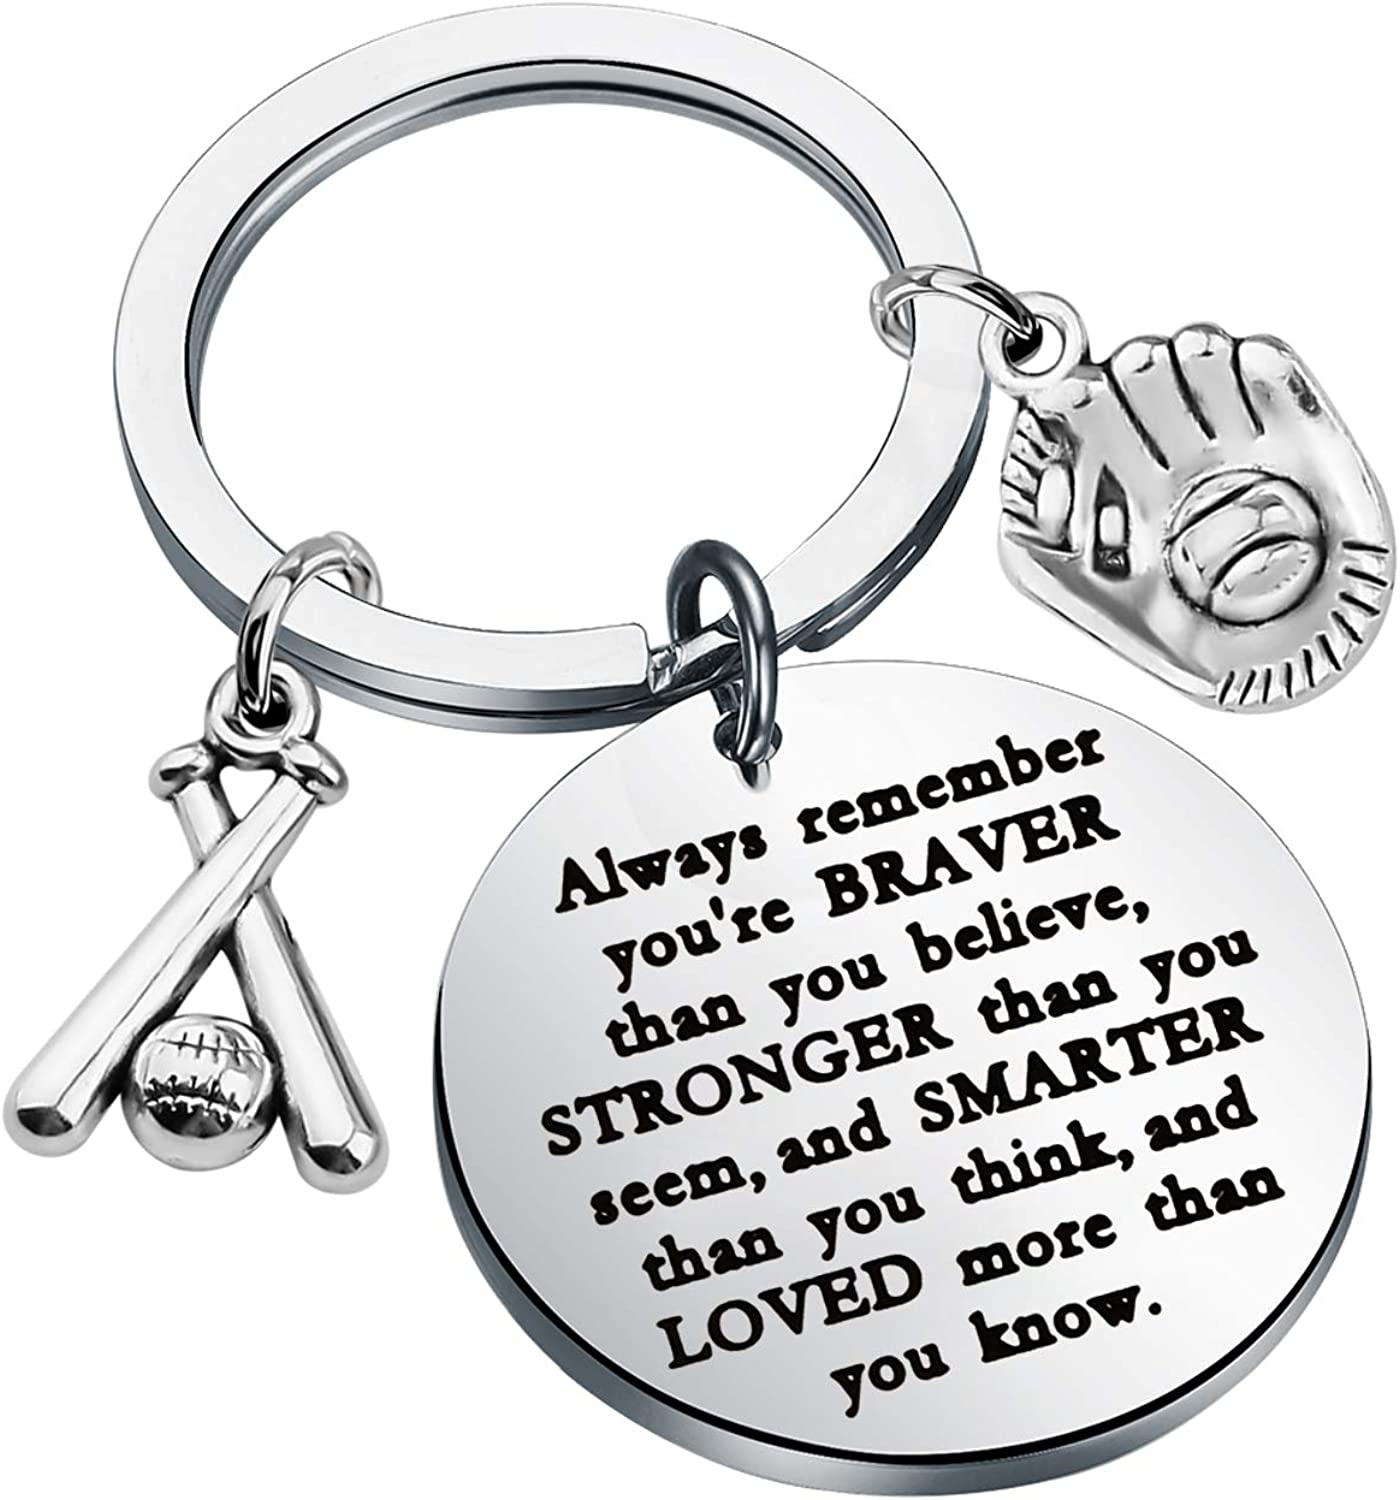 WSNANG Baseball Keychain Always Remember You are Braver Stronger Smarter Than You Think Keychain Baseball Student Graduation Gift Baseball Player Gift Baseball Coach Gift